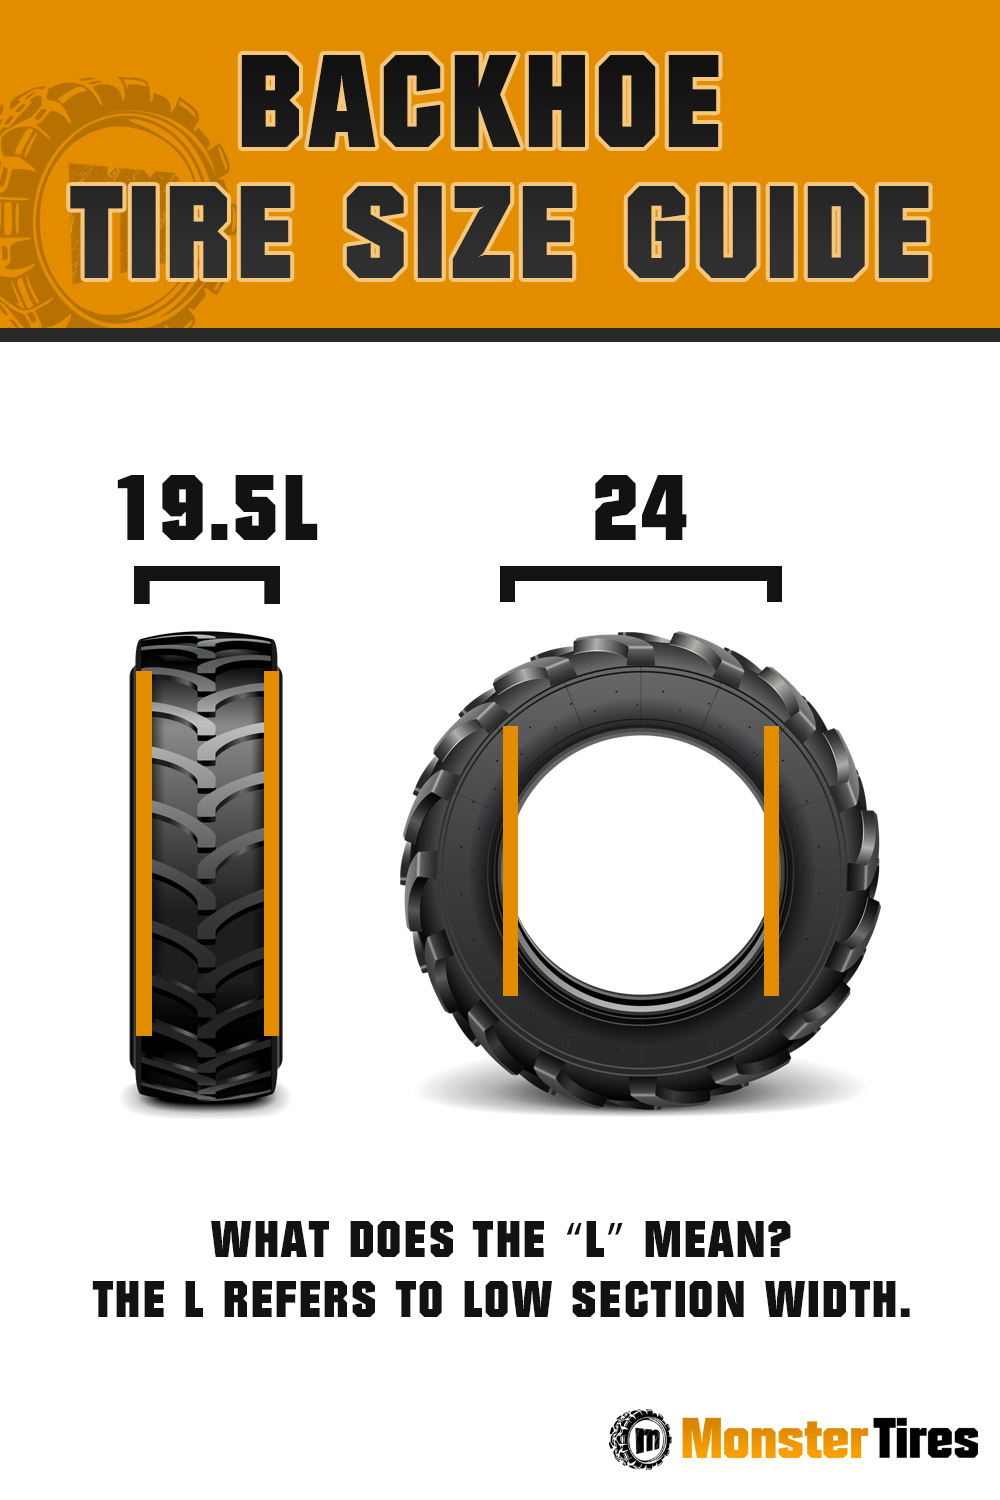 Backhoe Tire Size Guide - What does the L Stand For